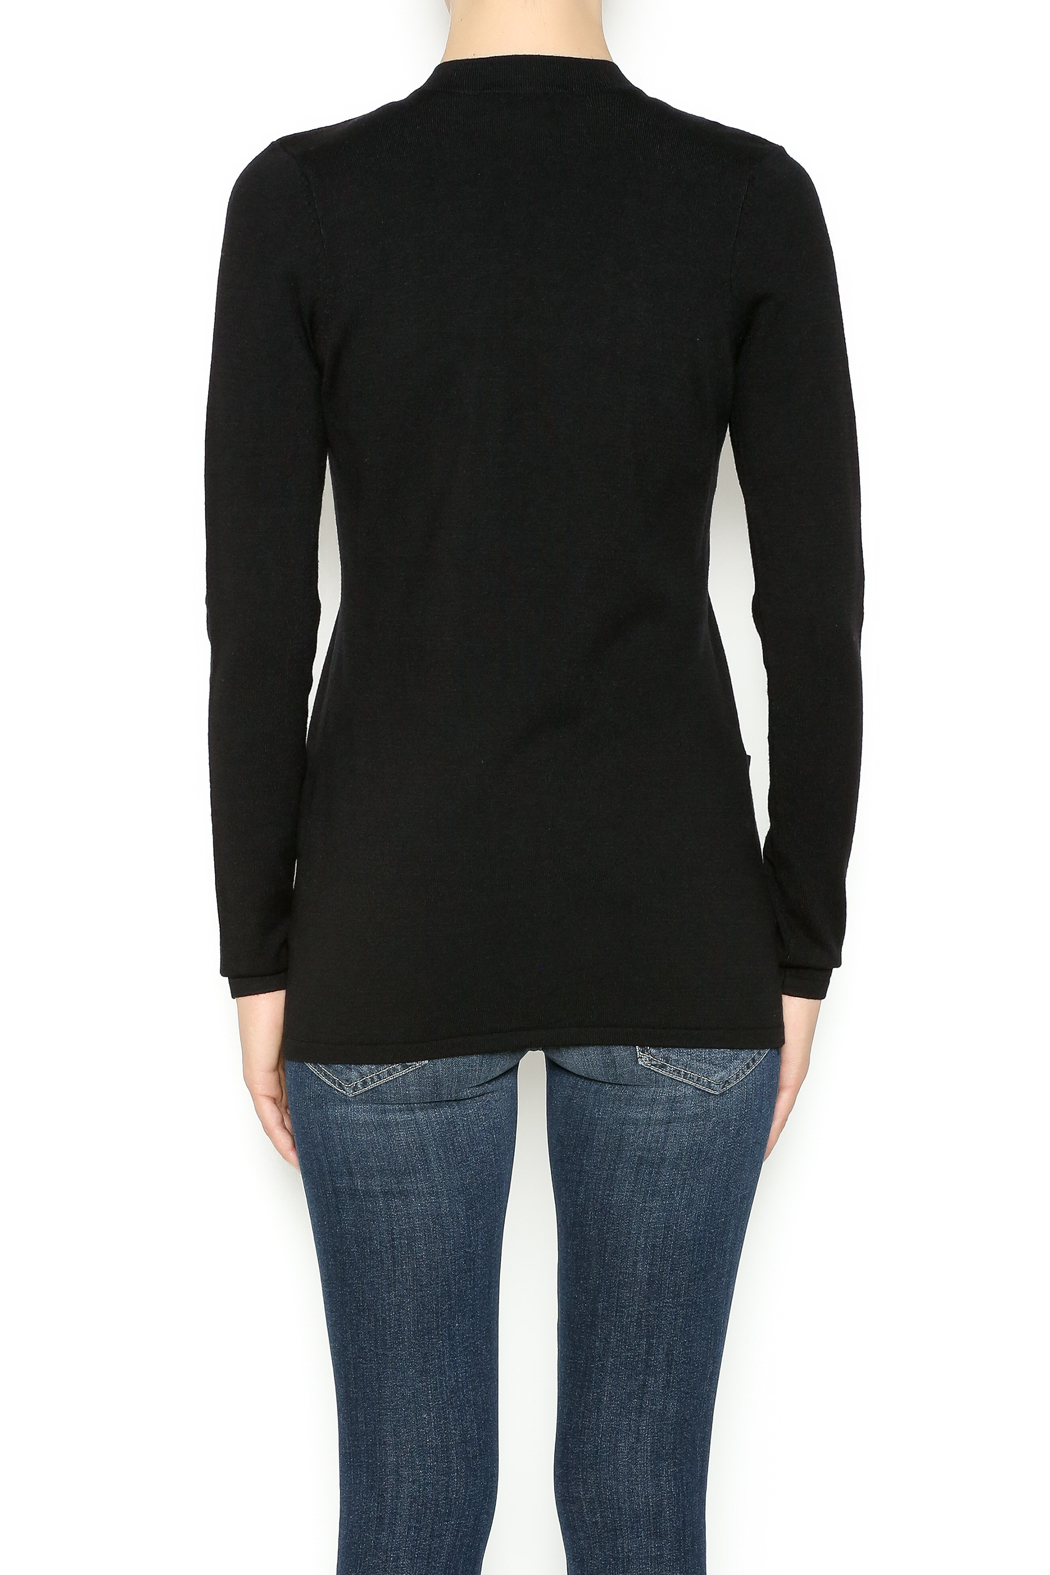 Cyrus Gold Trim Sweater - Back Cropped Image